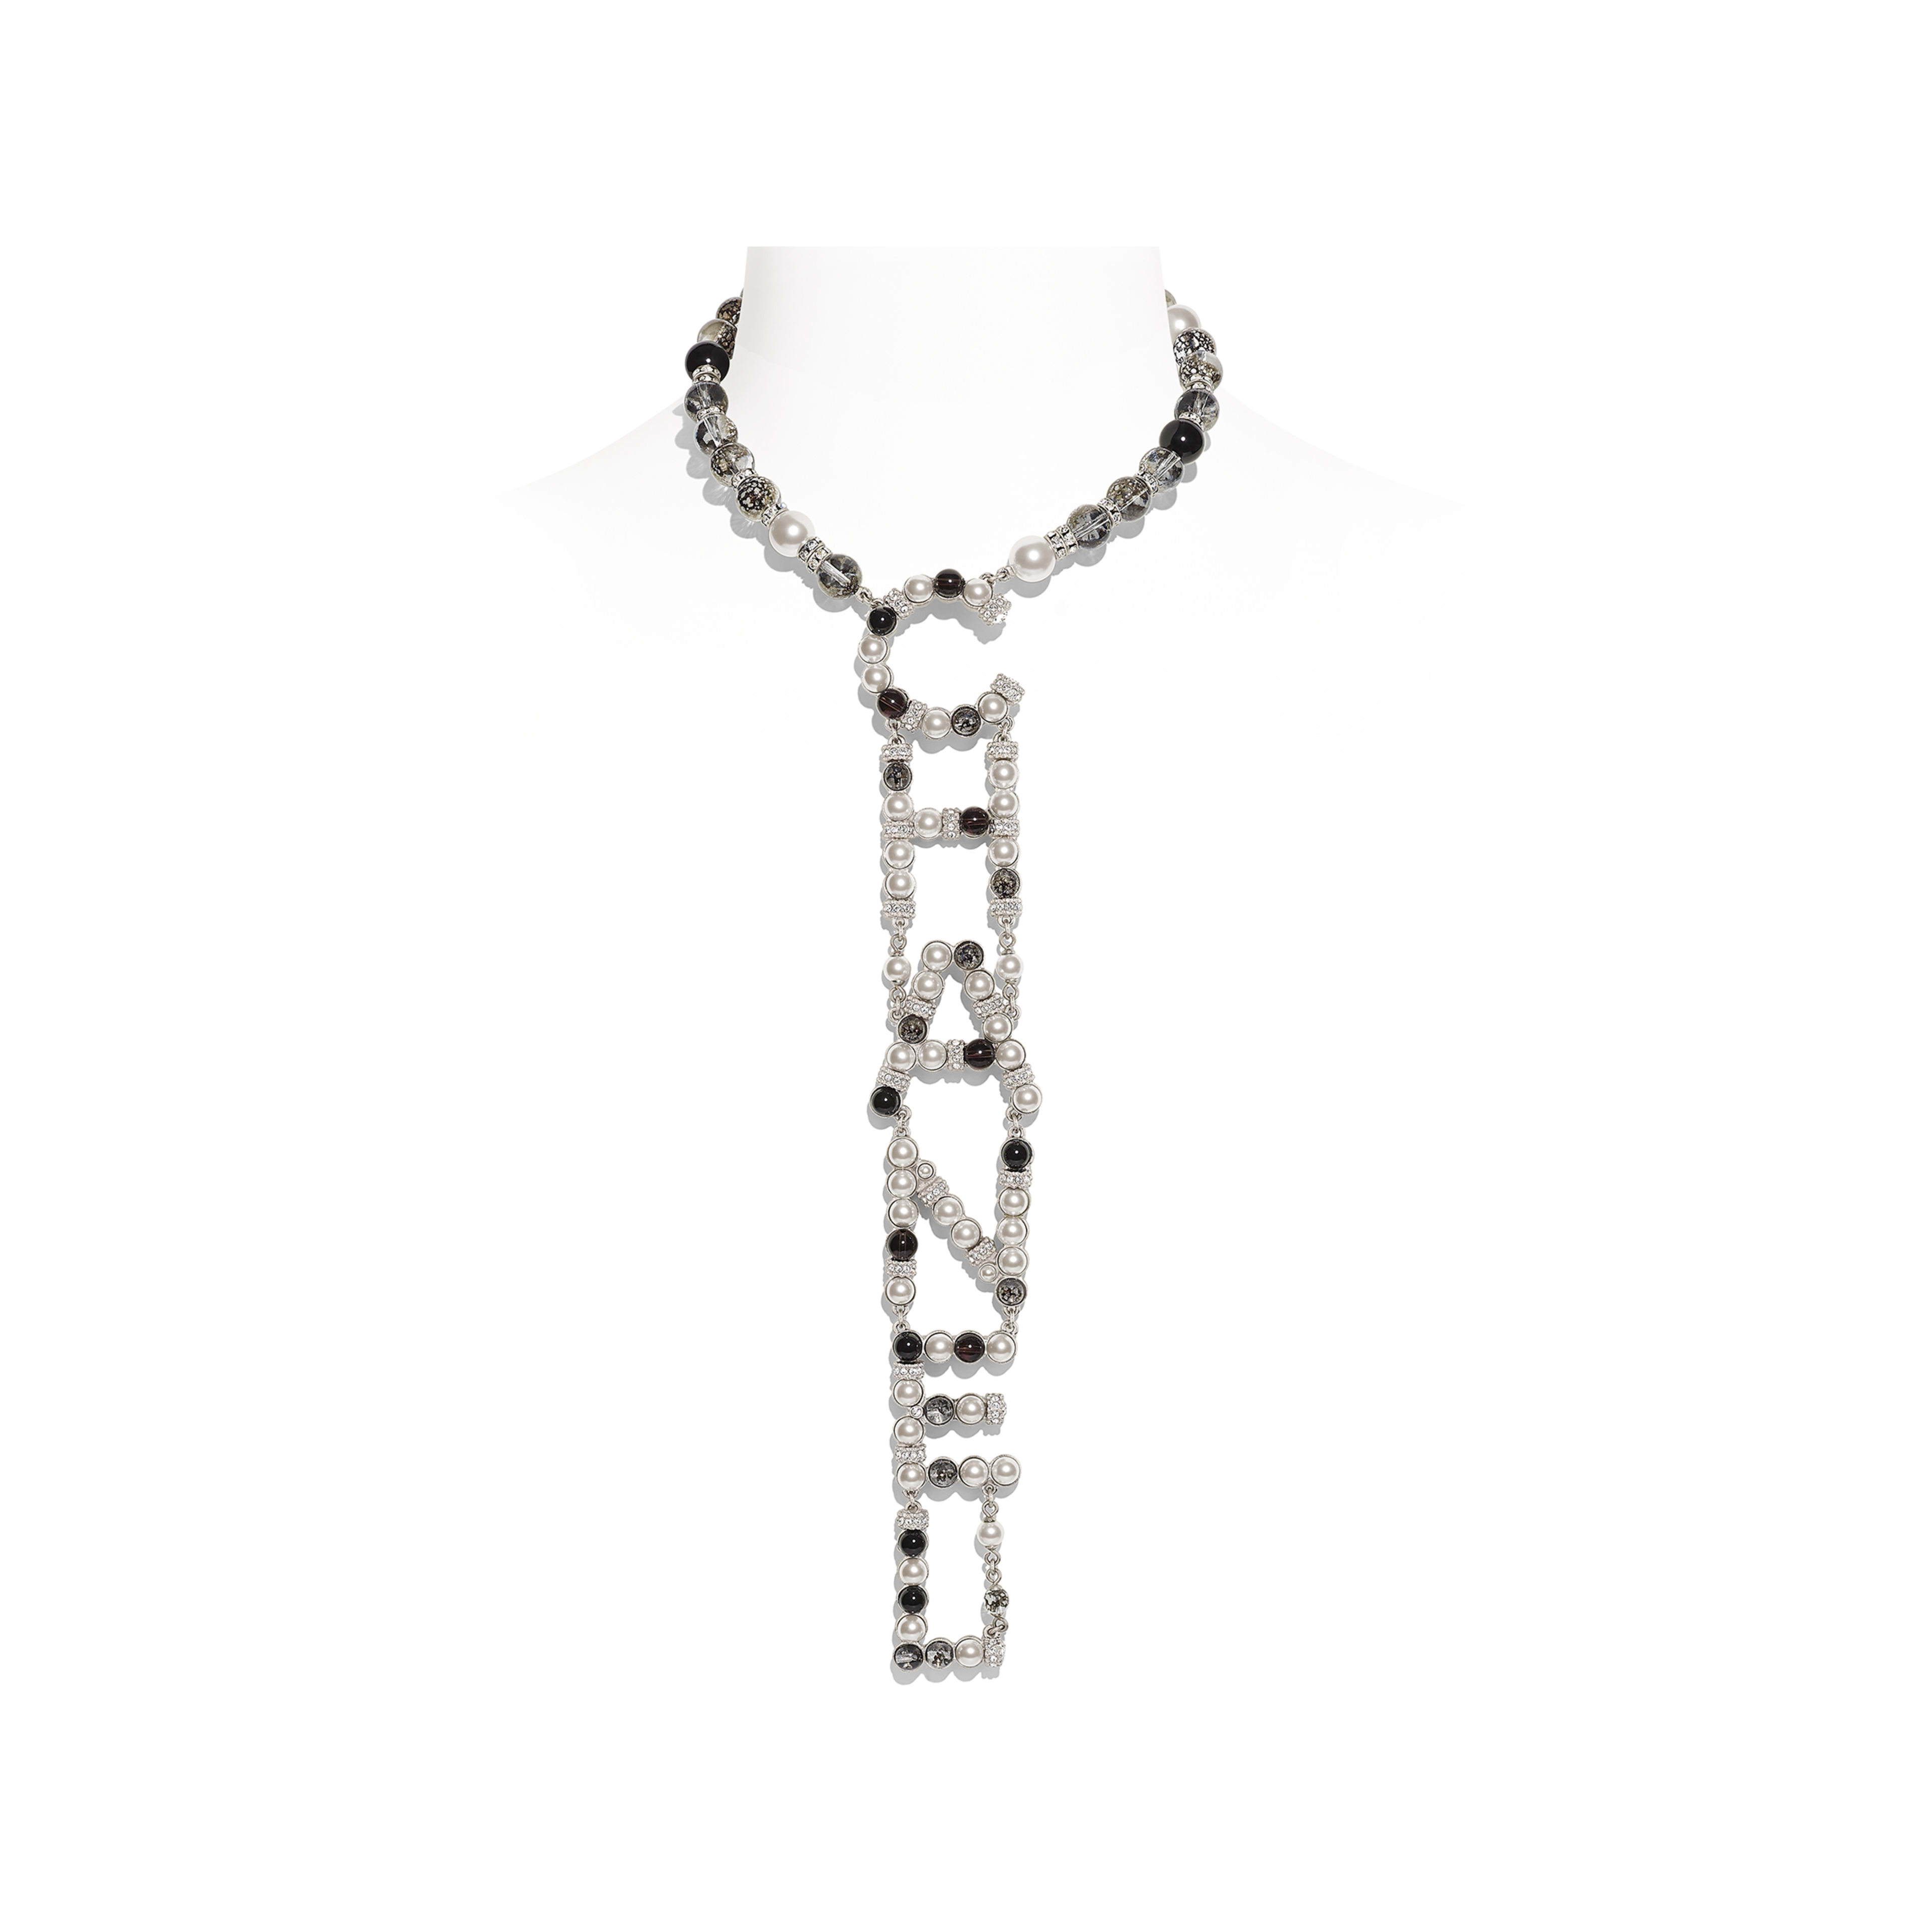 Necklace - Silver, Pearly White, Black & Crystal - Metal, Natural Stones, Glass Pearls & Strass - Default view - see full sized version